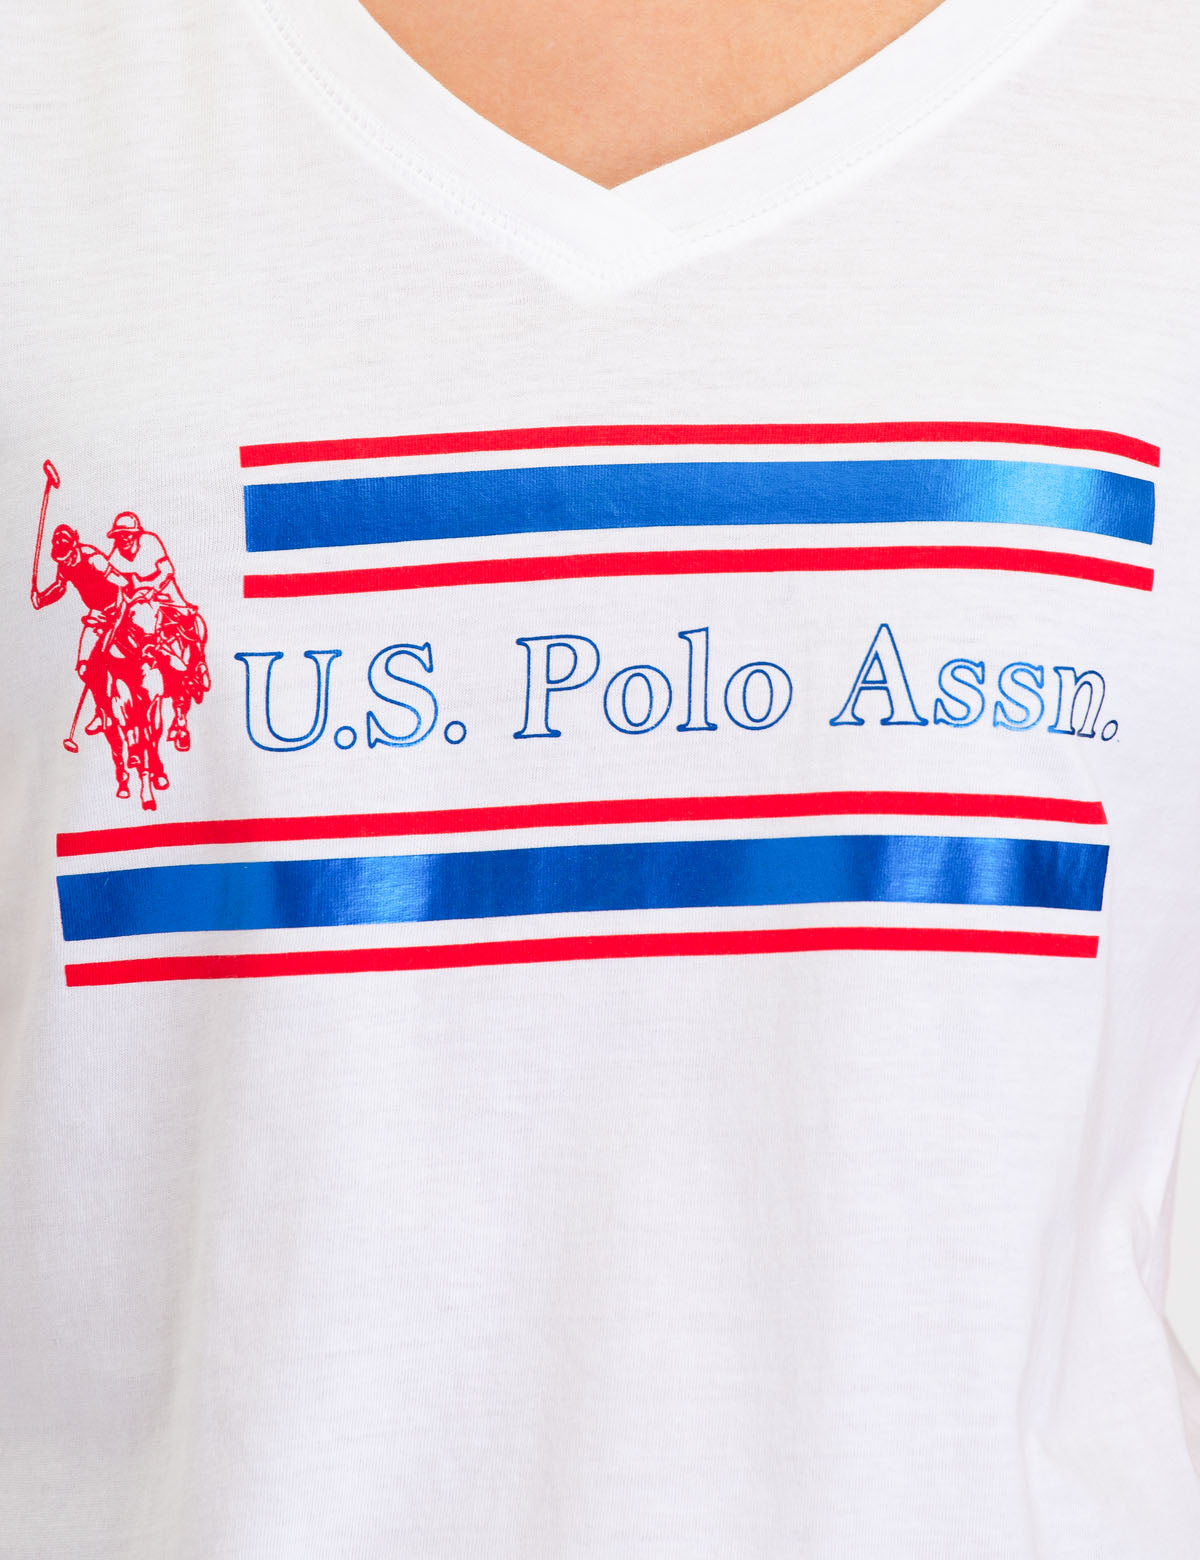 USPA FOIL STRIPED GRAPHIC T-SHIRT - U.S. Polo Assn.